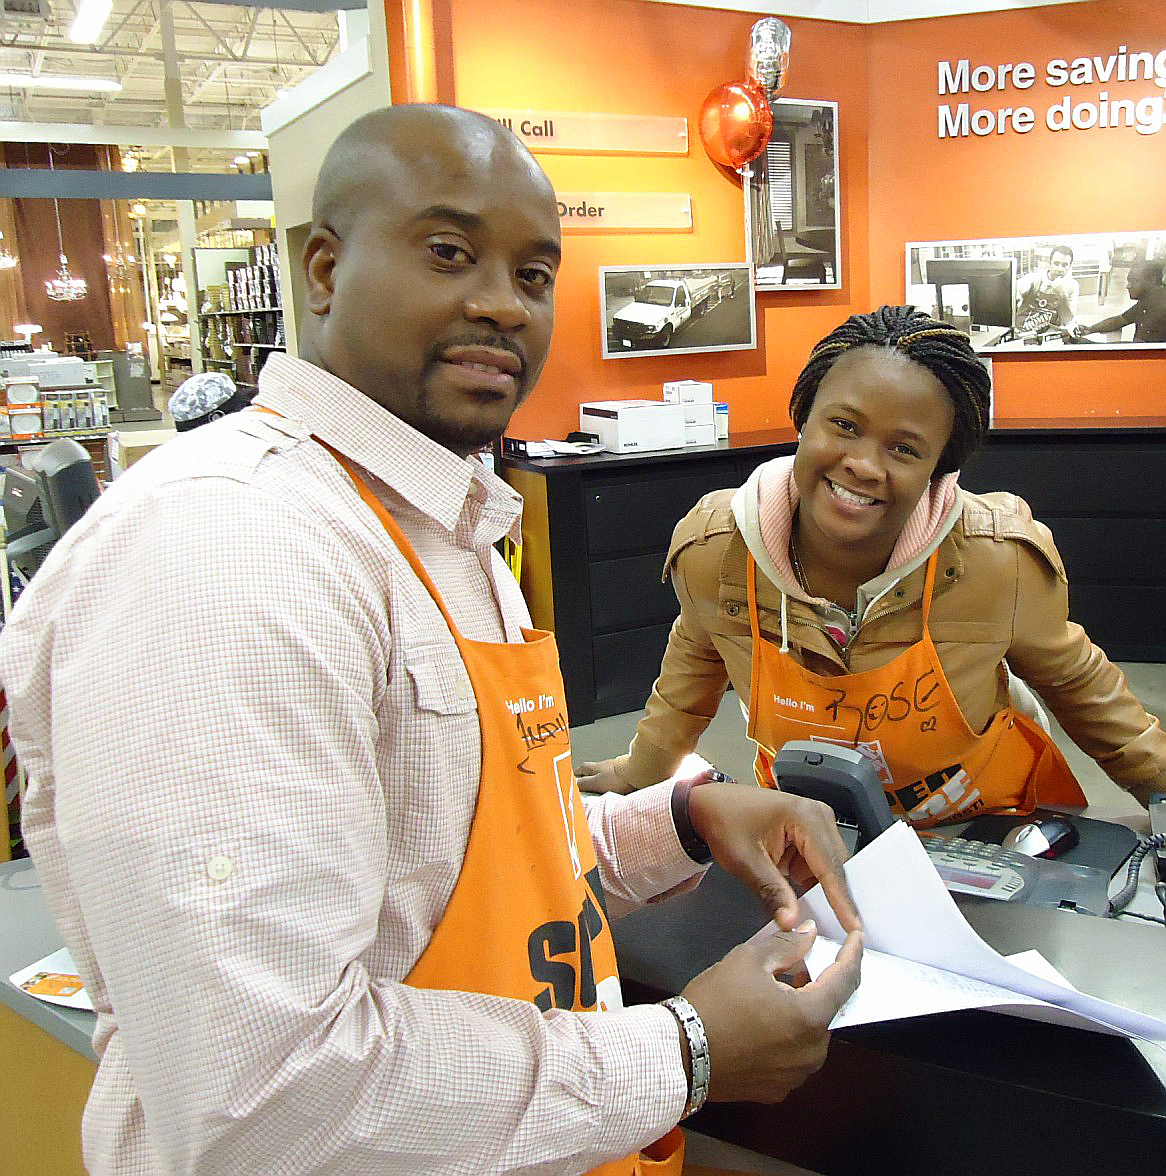 Home_Depot_employees_who_rescued_my_camera.jpg